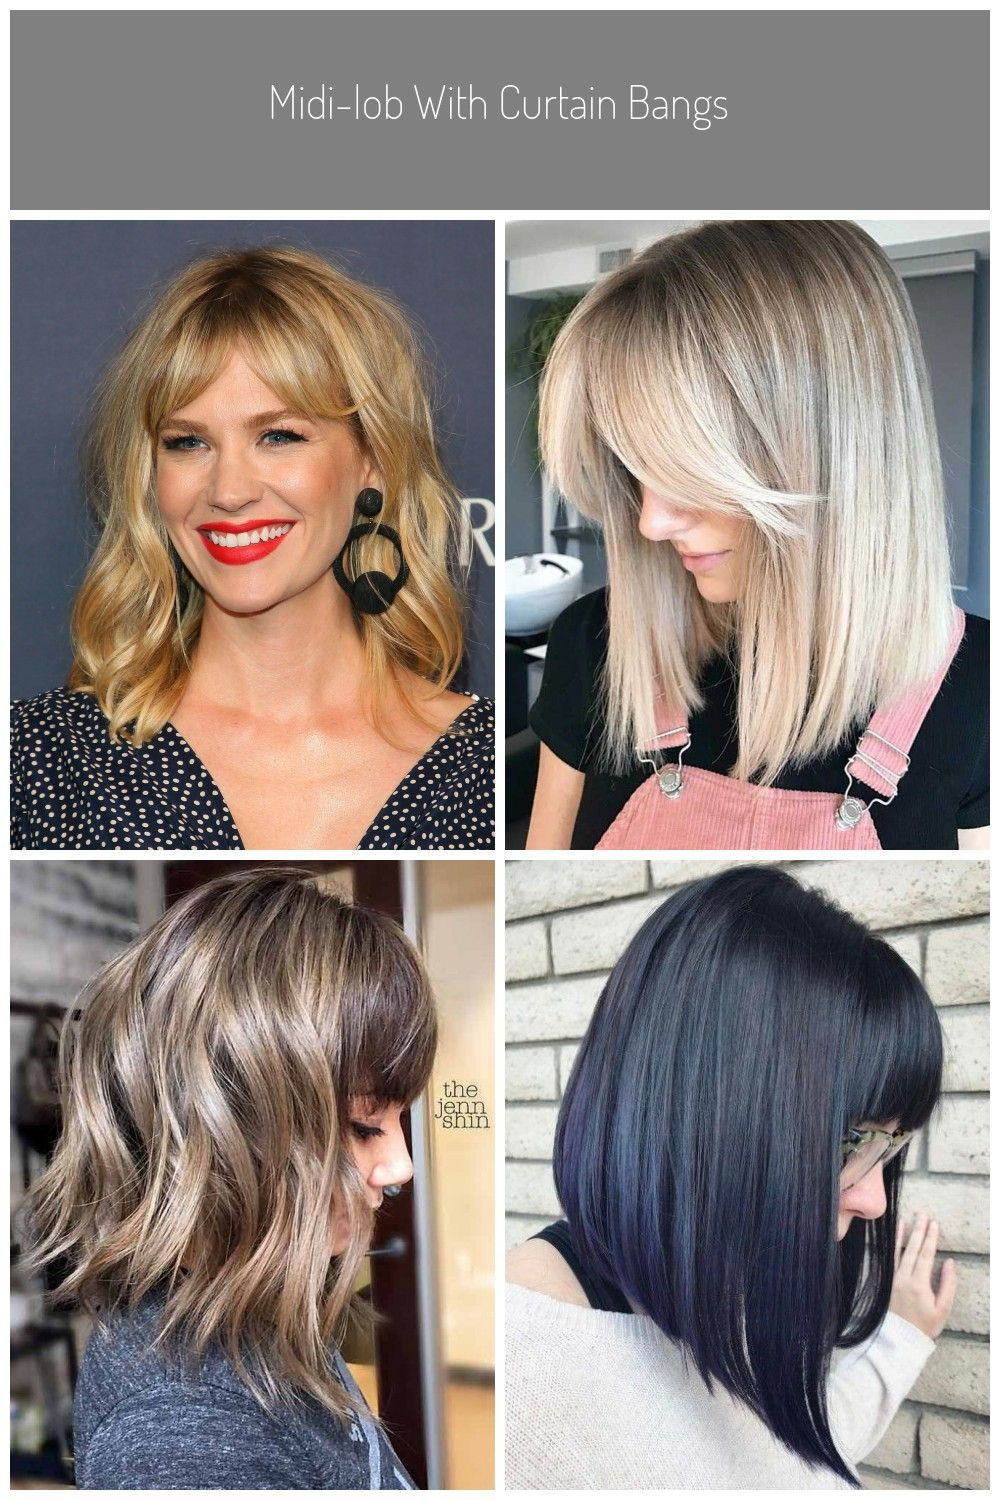 Midi Lob With Curtain Bangs Lob With Bangs Midi Lob With Curtain Bangs Undercut Long Hair Long Bob Haircut With Bangs Long Bob Hairstyles